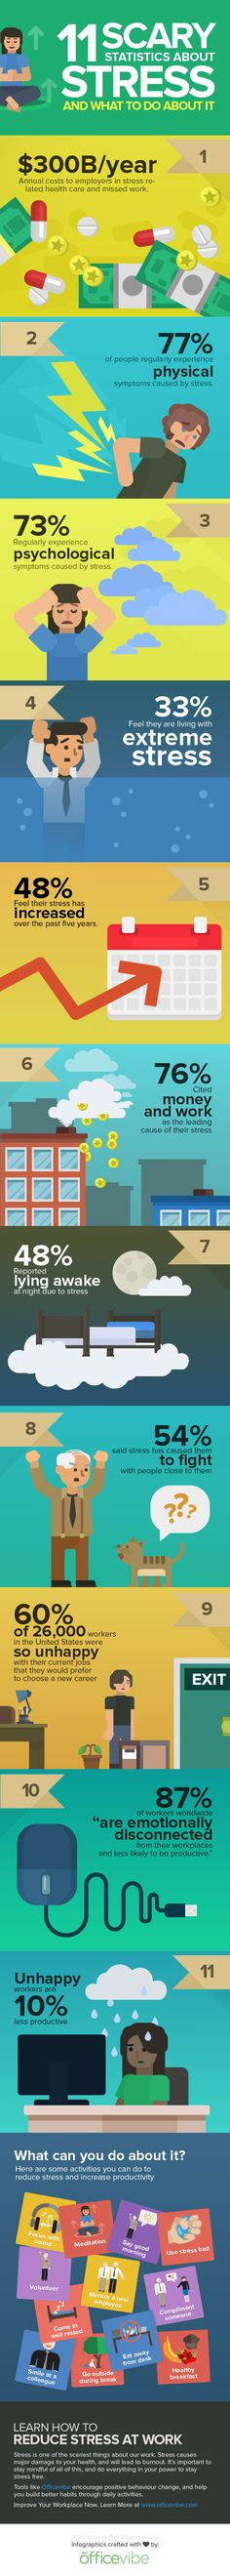 http://www.business2community.com/infographics/11-scary-statistics-stress-work-infographic-0932409